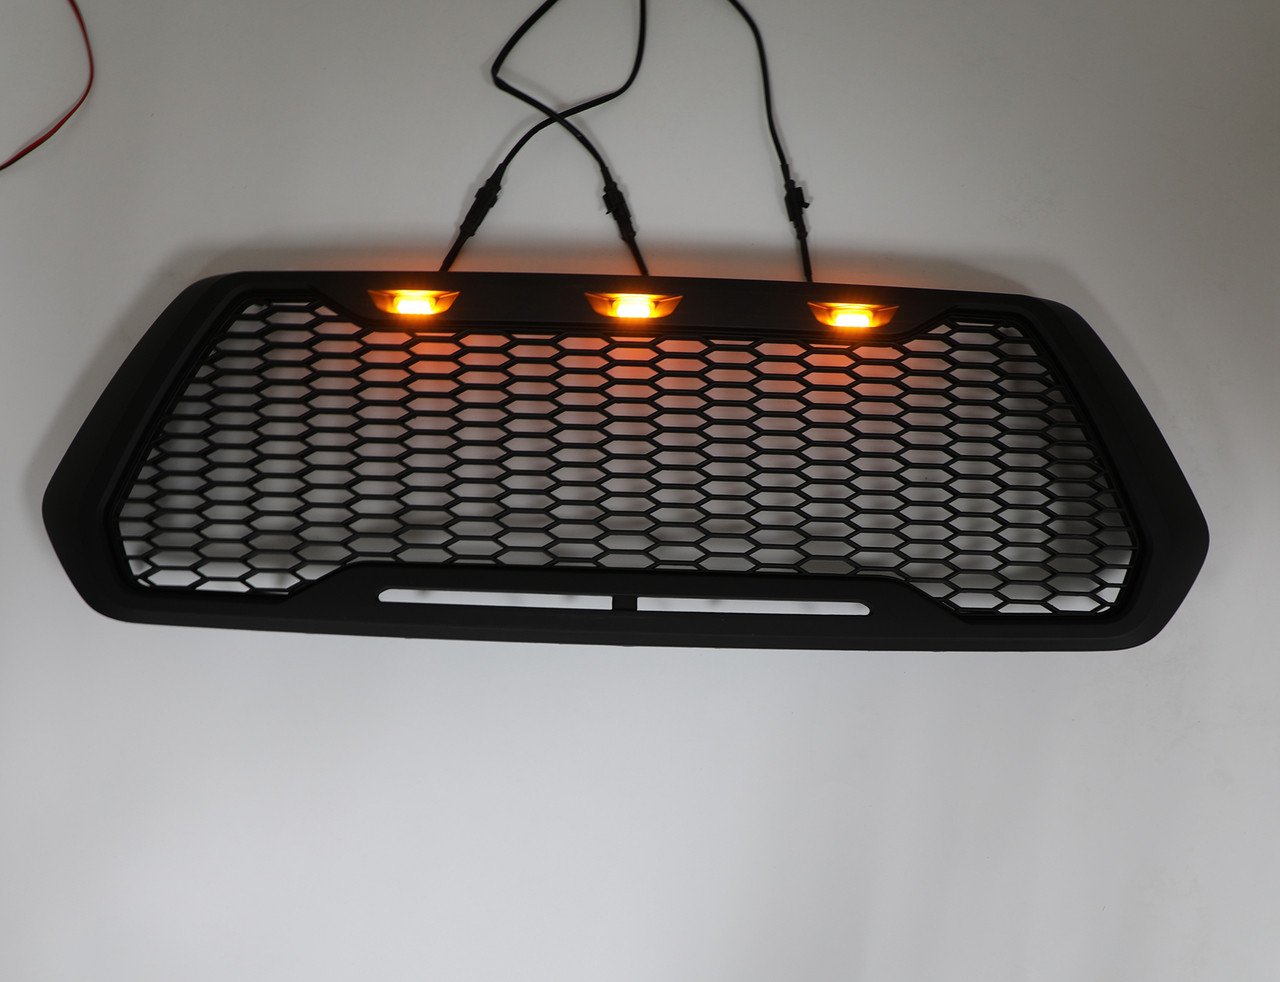 Raptor Style ABS Mesh Grille For Toyota Tacoma With 3 Amber LED Lights 2016-2018 Black